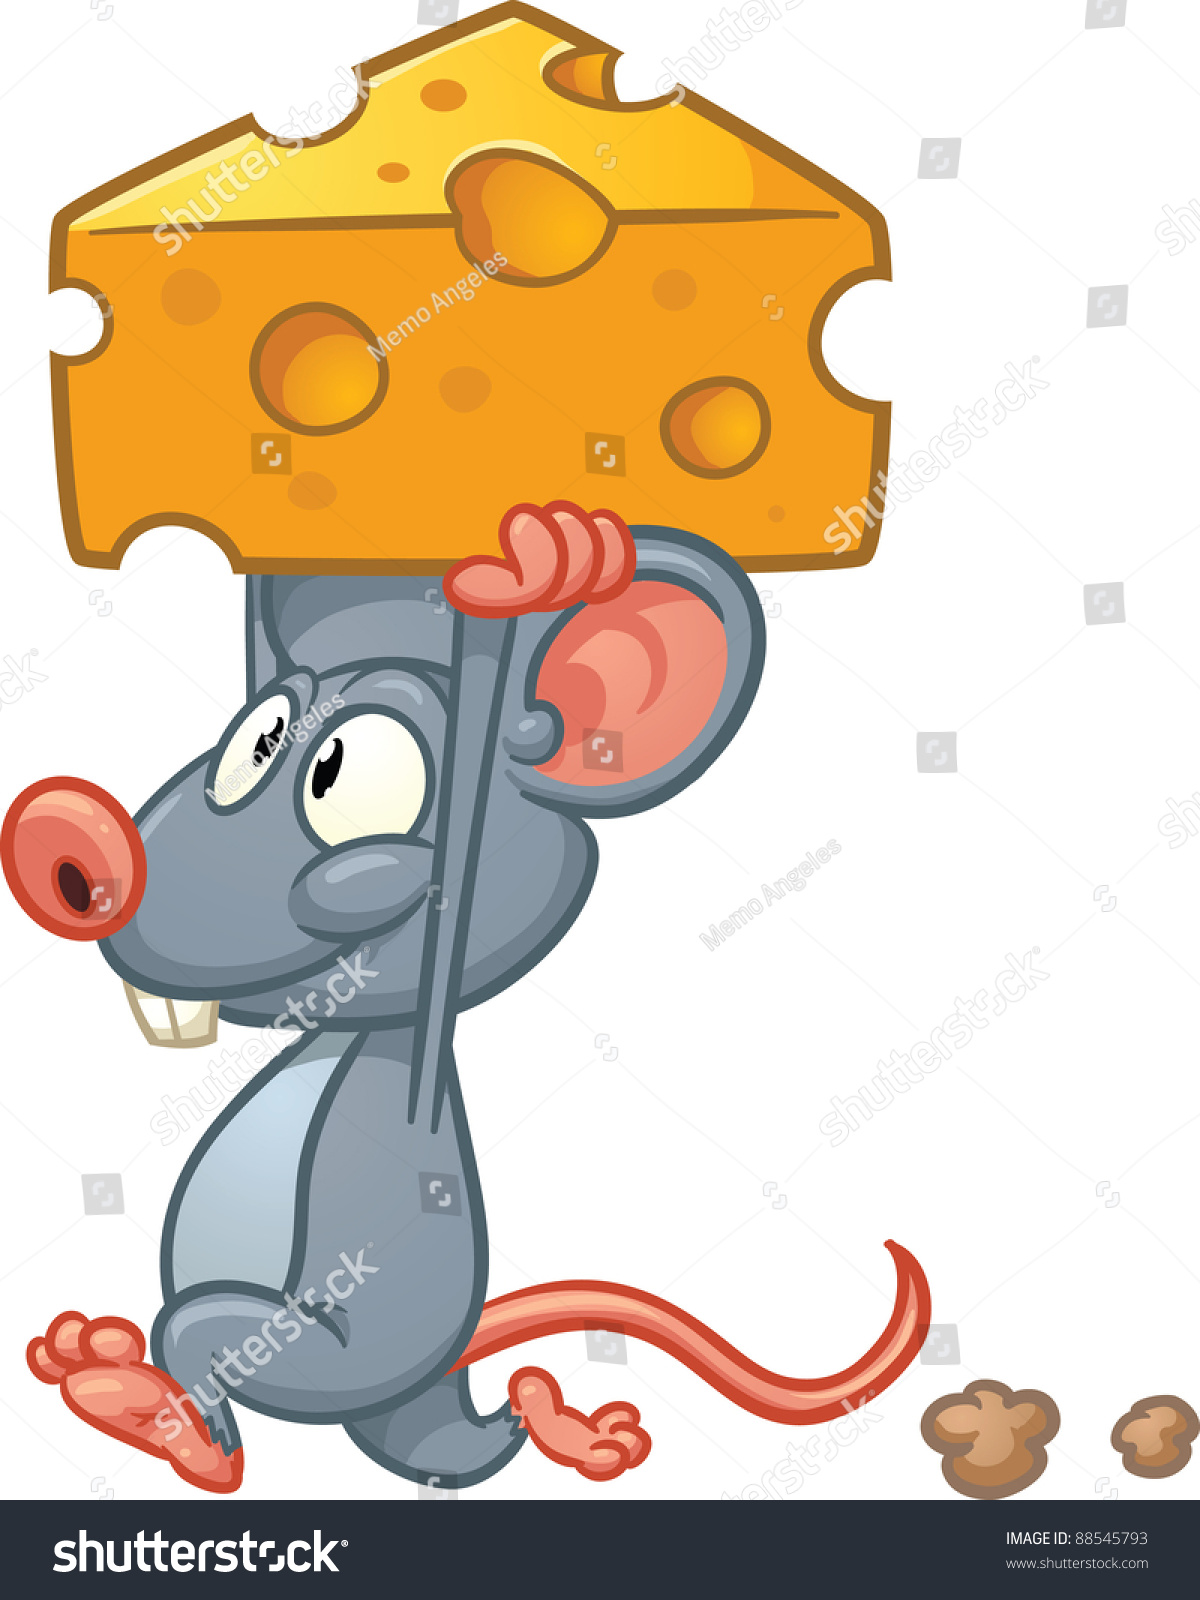 small gray mouse clip art